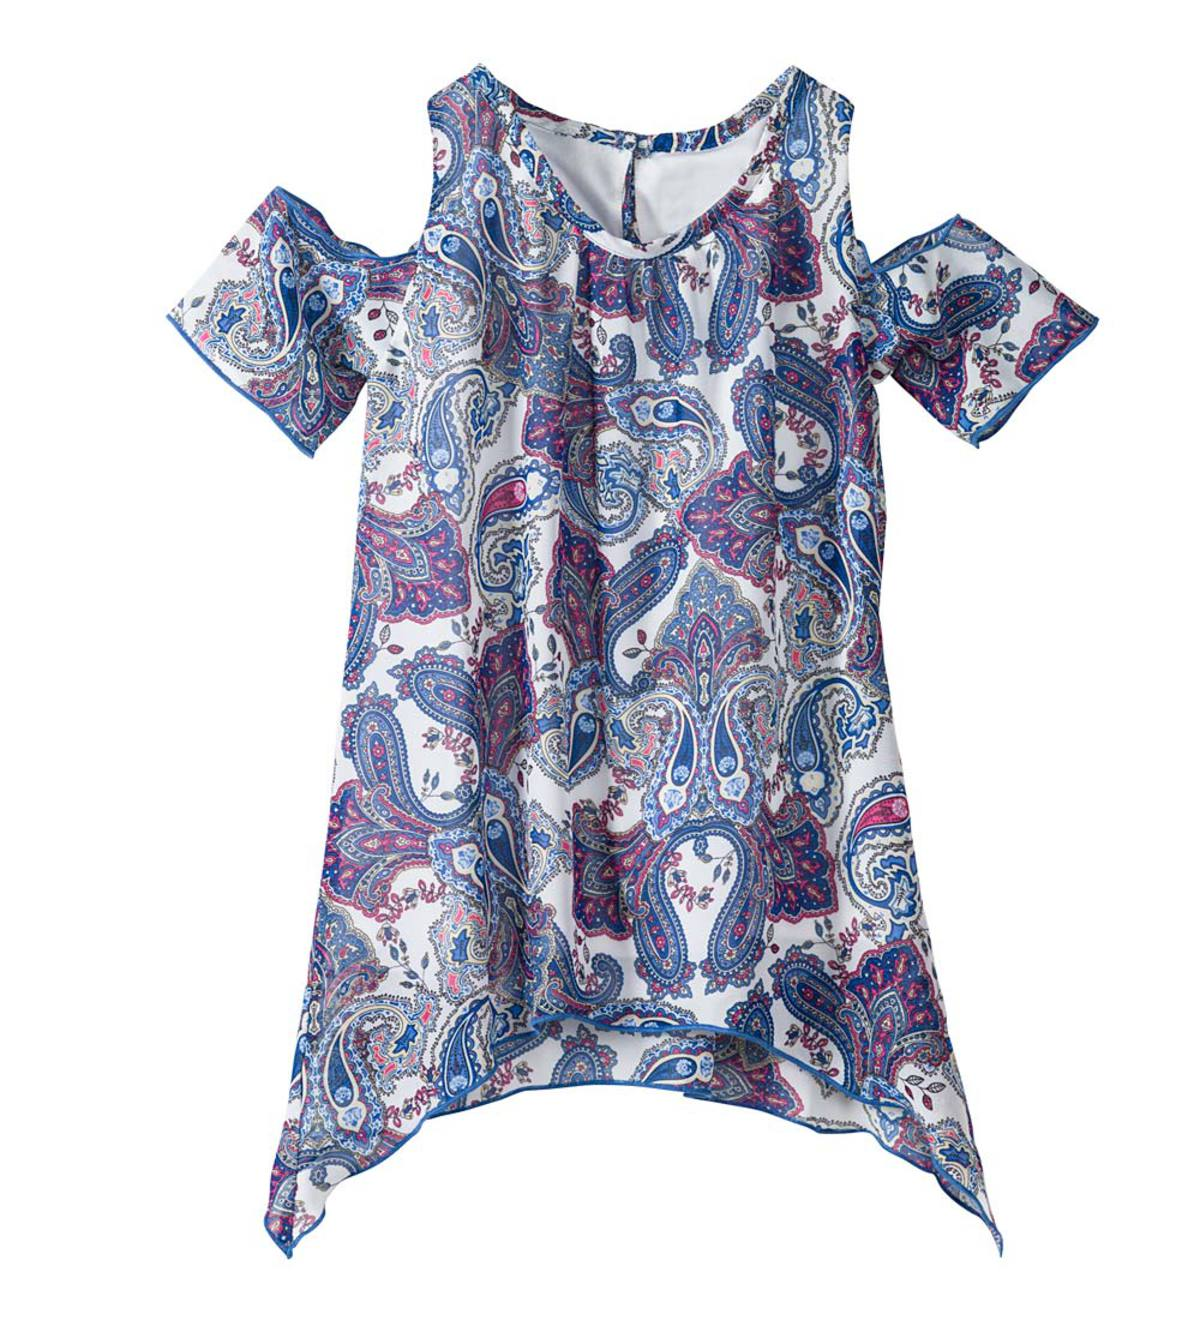 Paisley Open Shoulder Top - Multi - 4